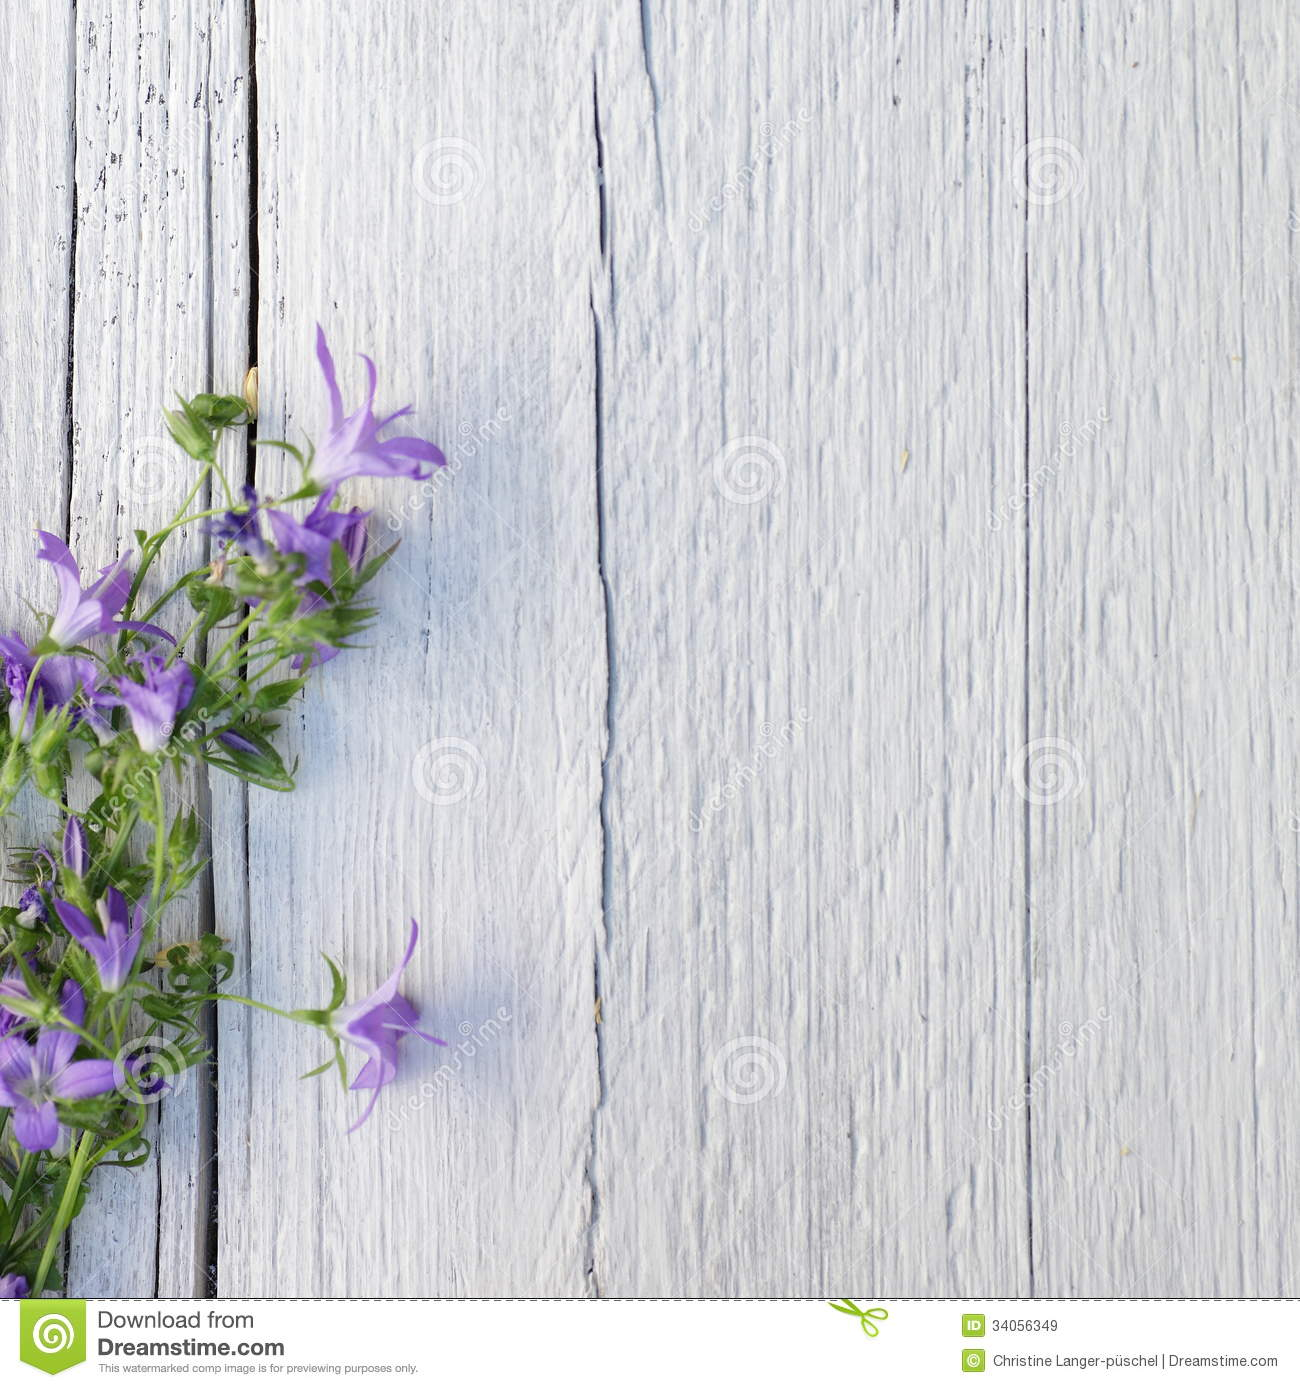 Bunch of purple flowers on white painted wood stock image image of bunch of purple flowers on white painted wood mightylinksfo